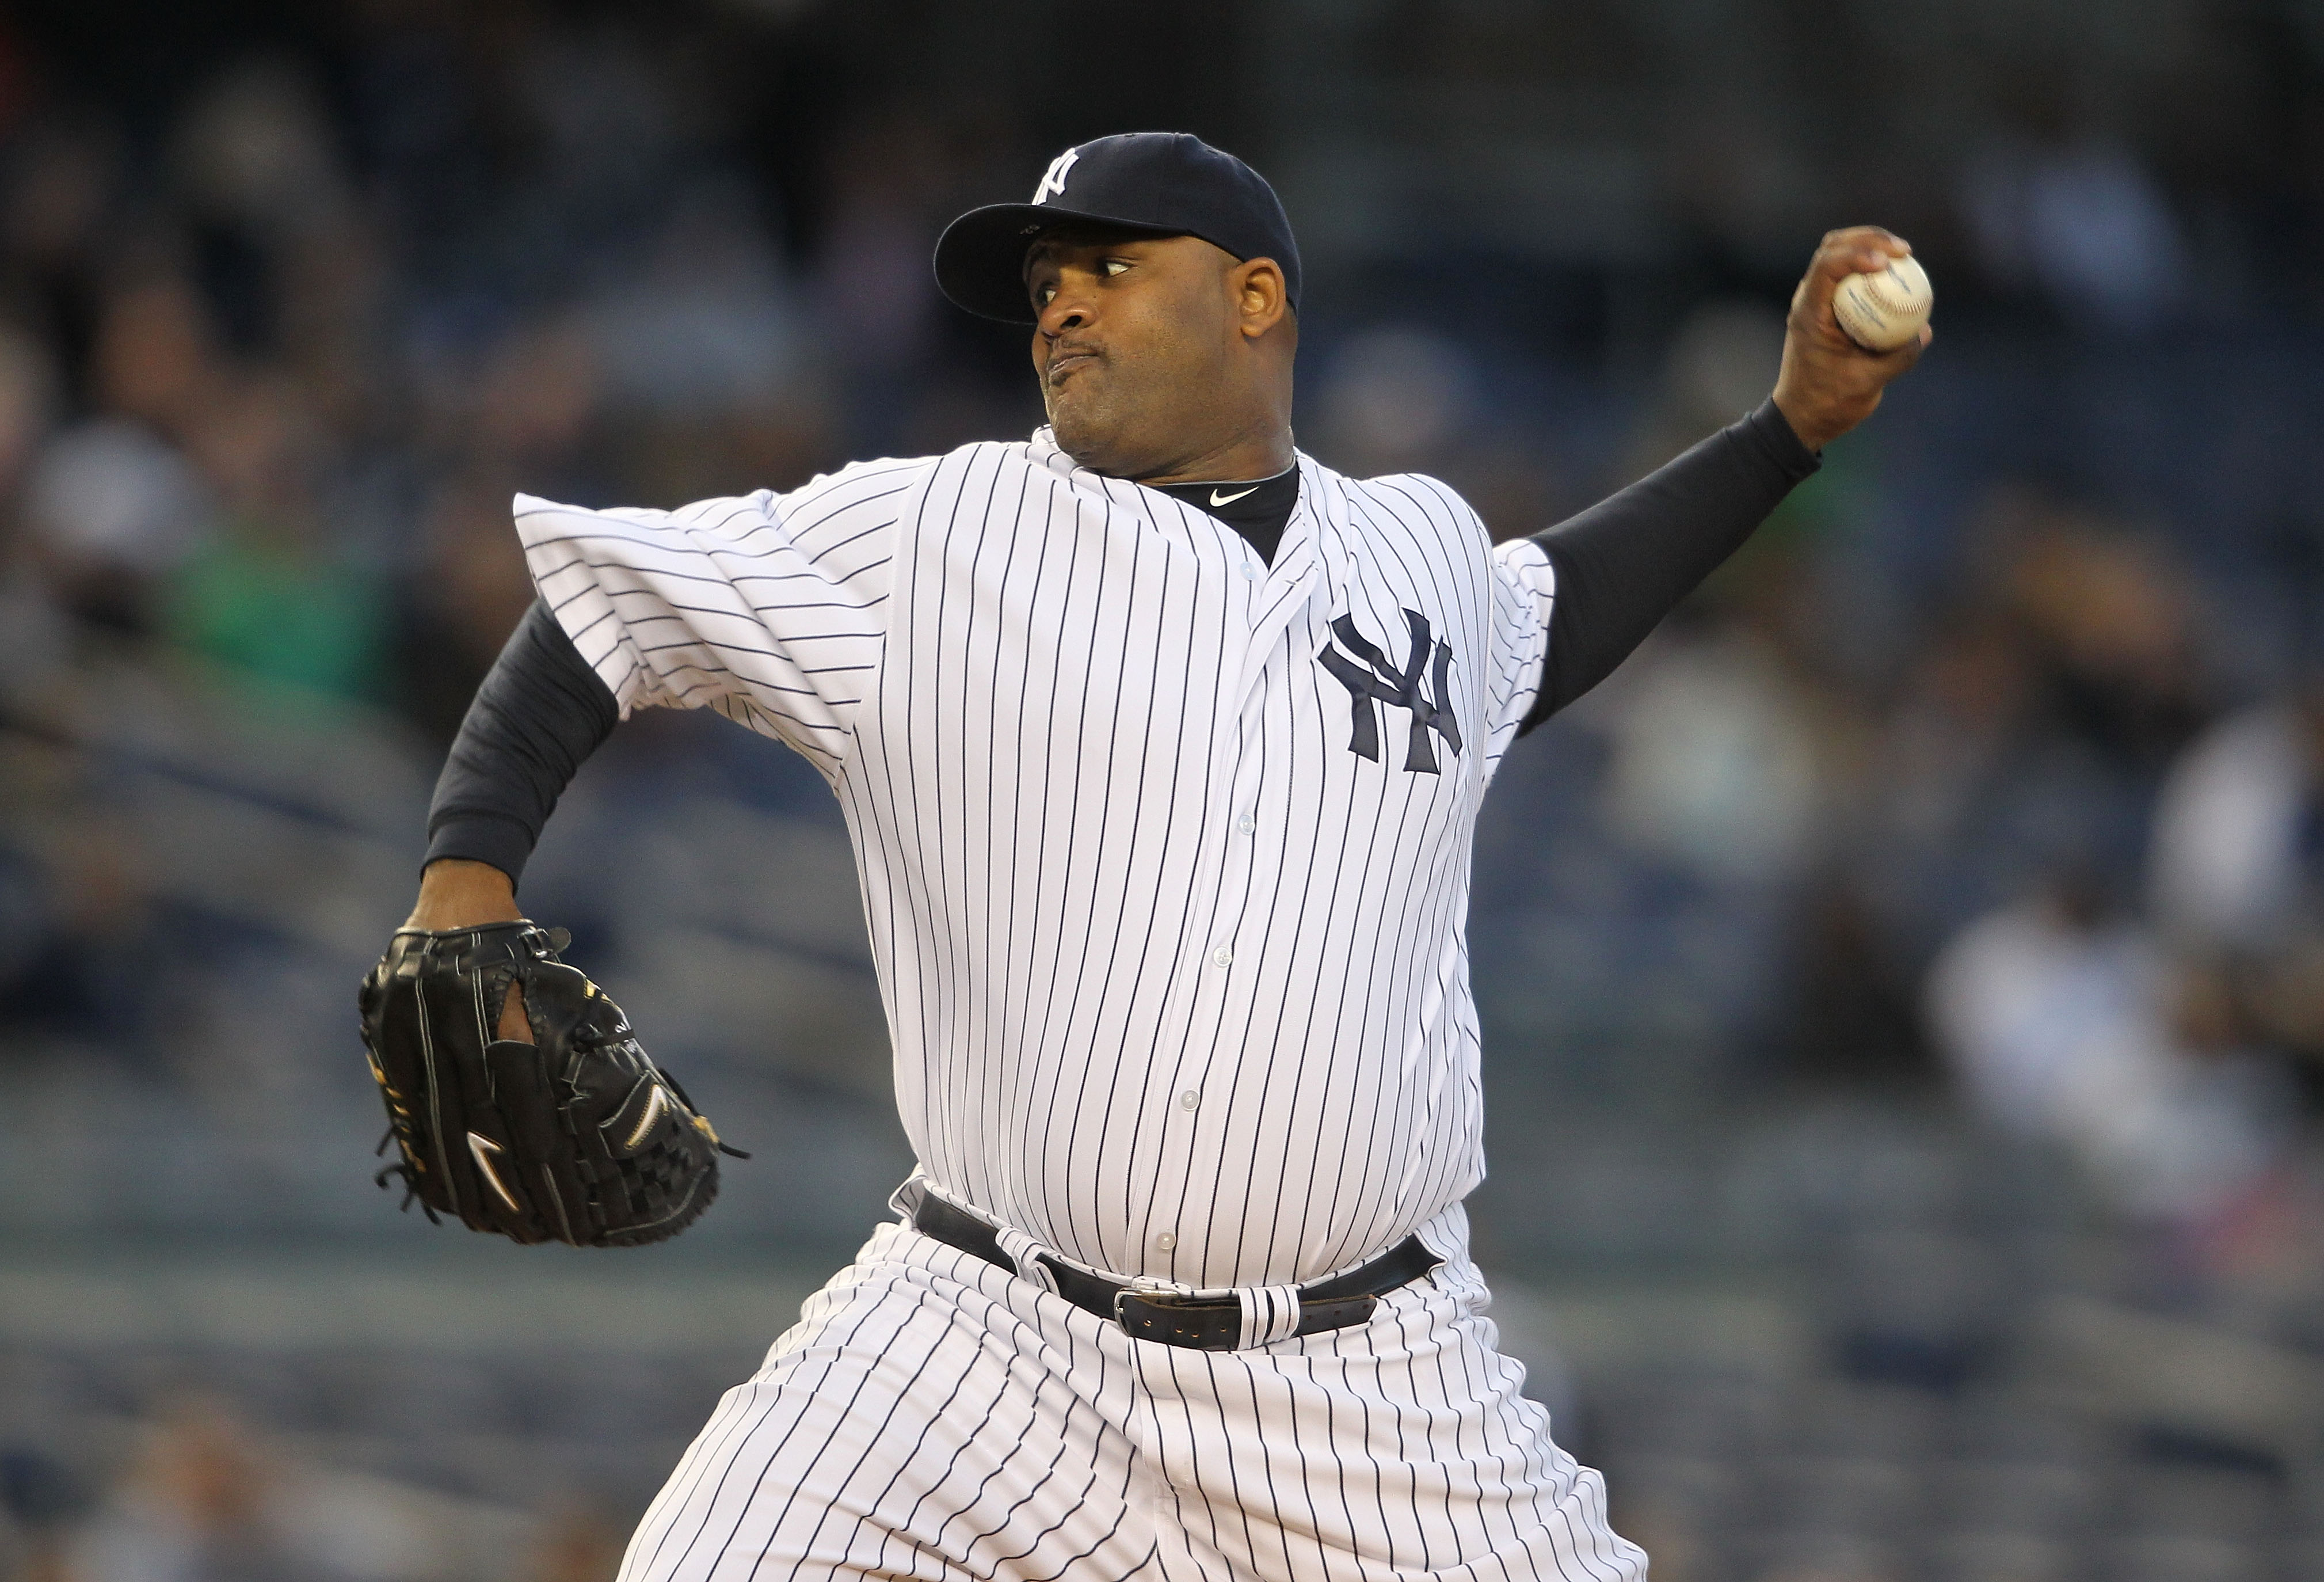 NEW YORK, NY - APRIL 05:  CC Sabathia #52 of the New York Yankees pitches against the Minnesota Twins at Yankee Stadium on April 5, 2011 in the Bronx borough of New York City.  (Photo by Nick Laham/Getty Images)